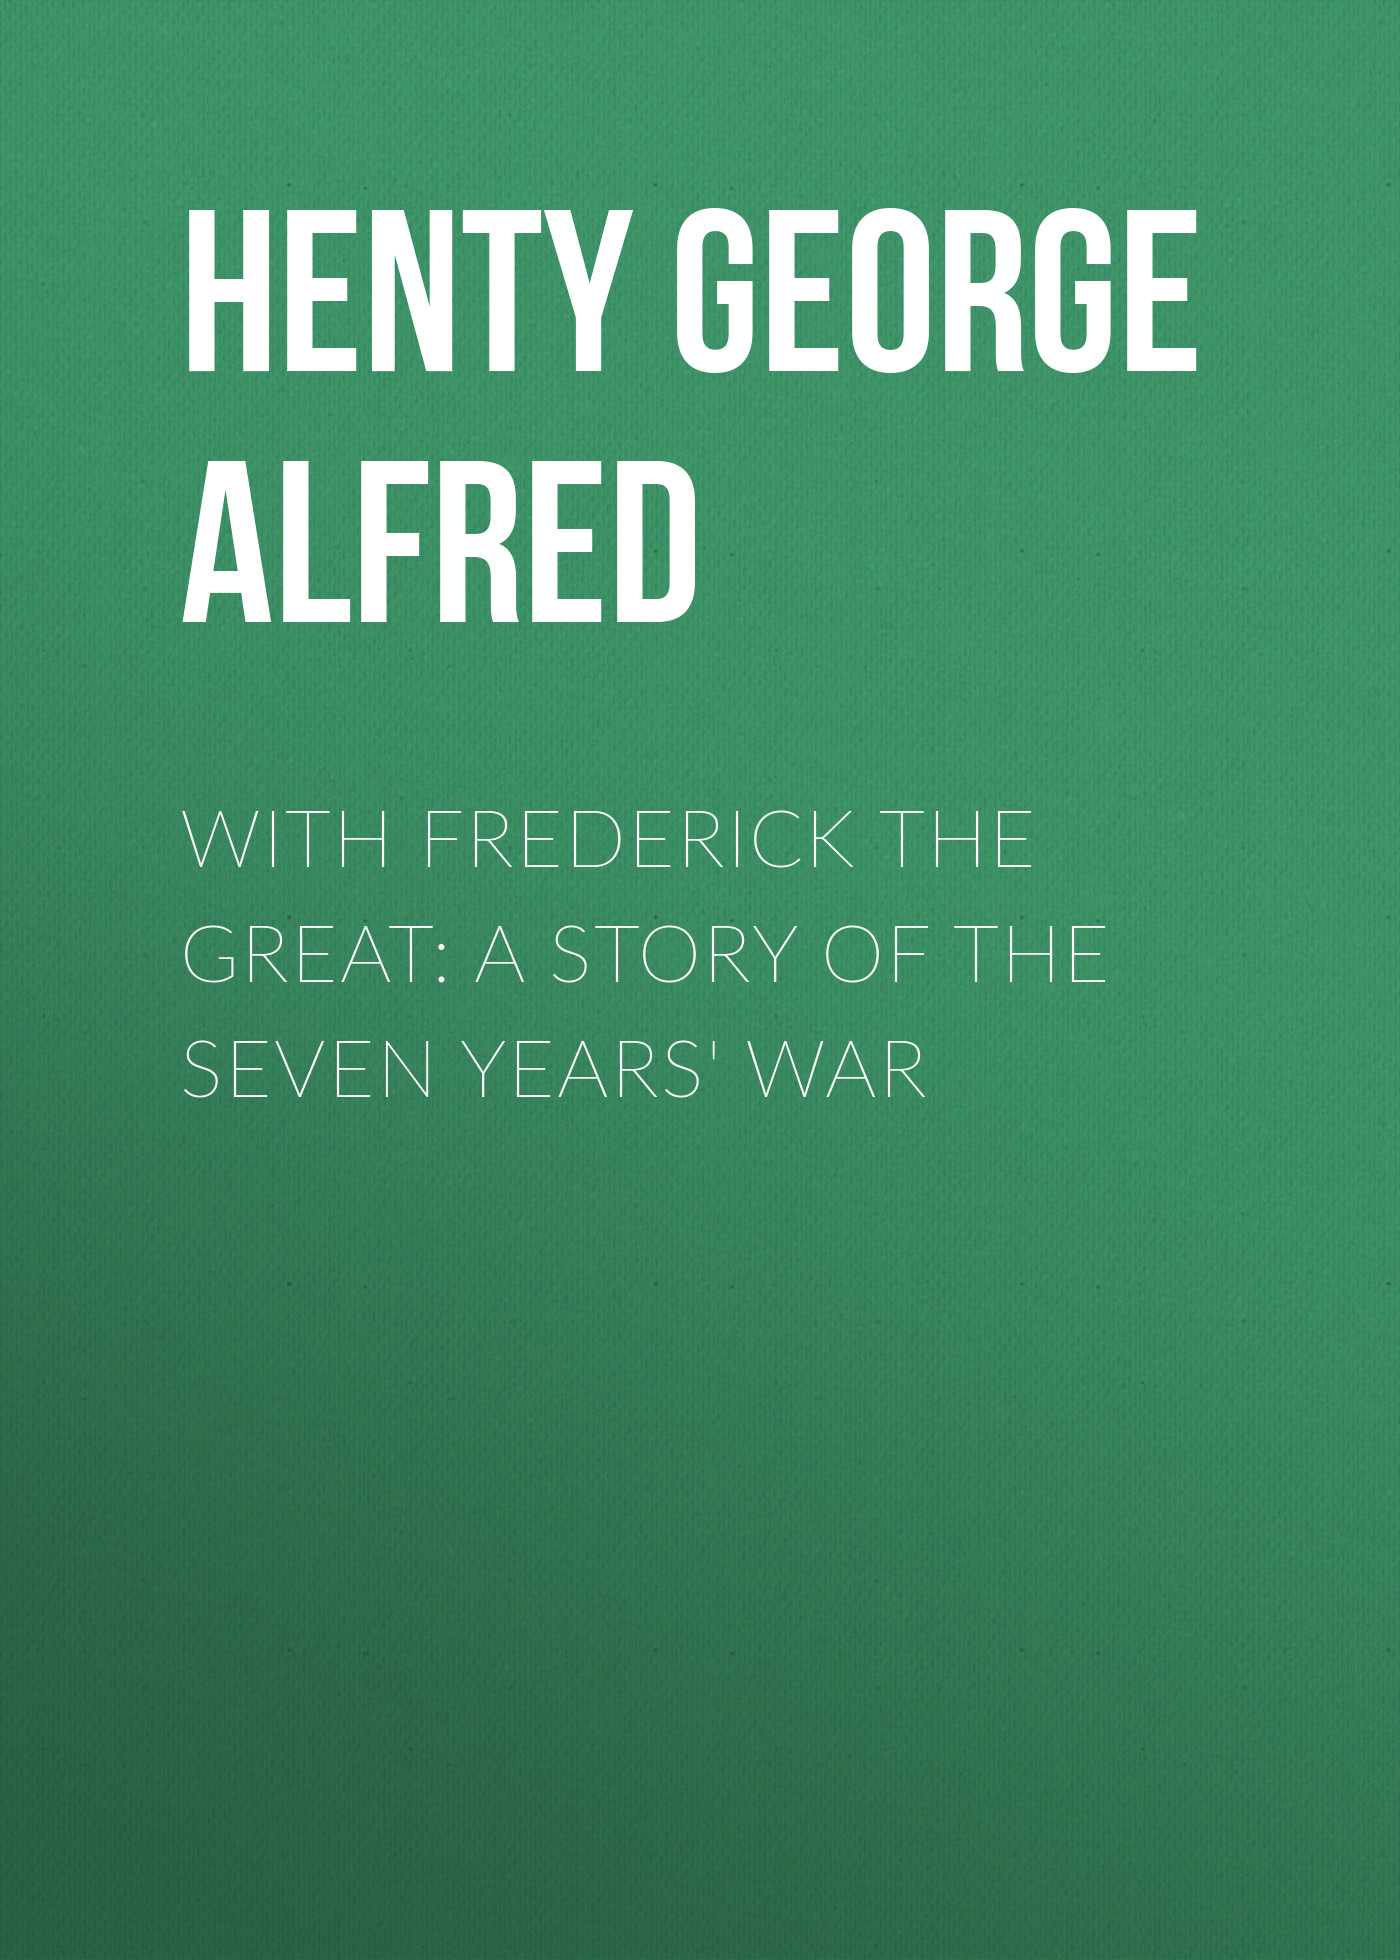 лучшая цена Henty George Alfred With Frederick the Great: A Story of the Seven Years' War